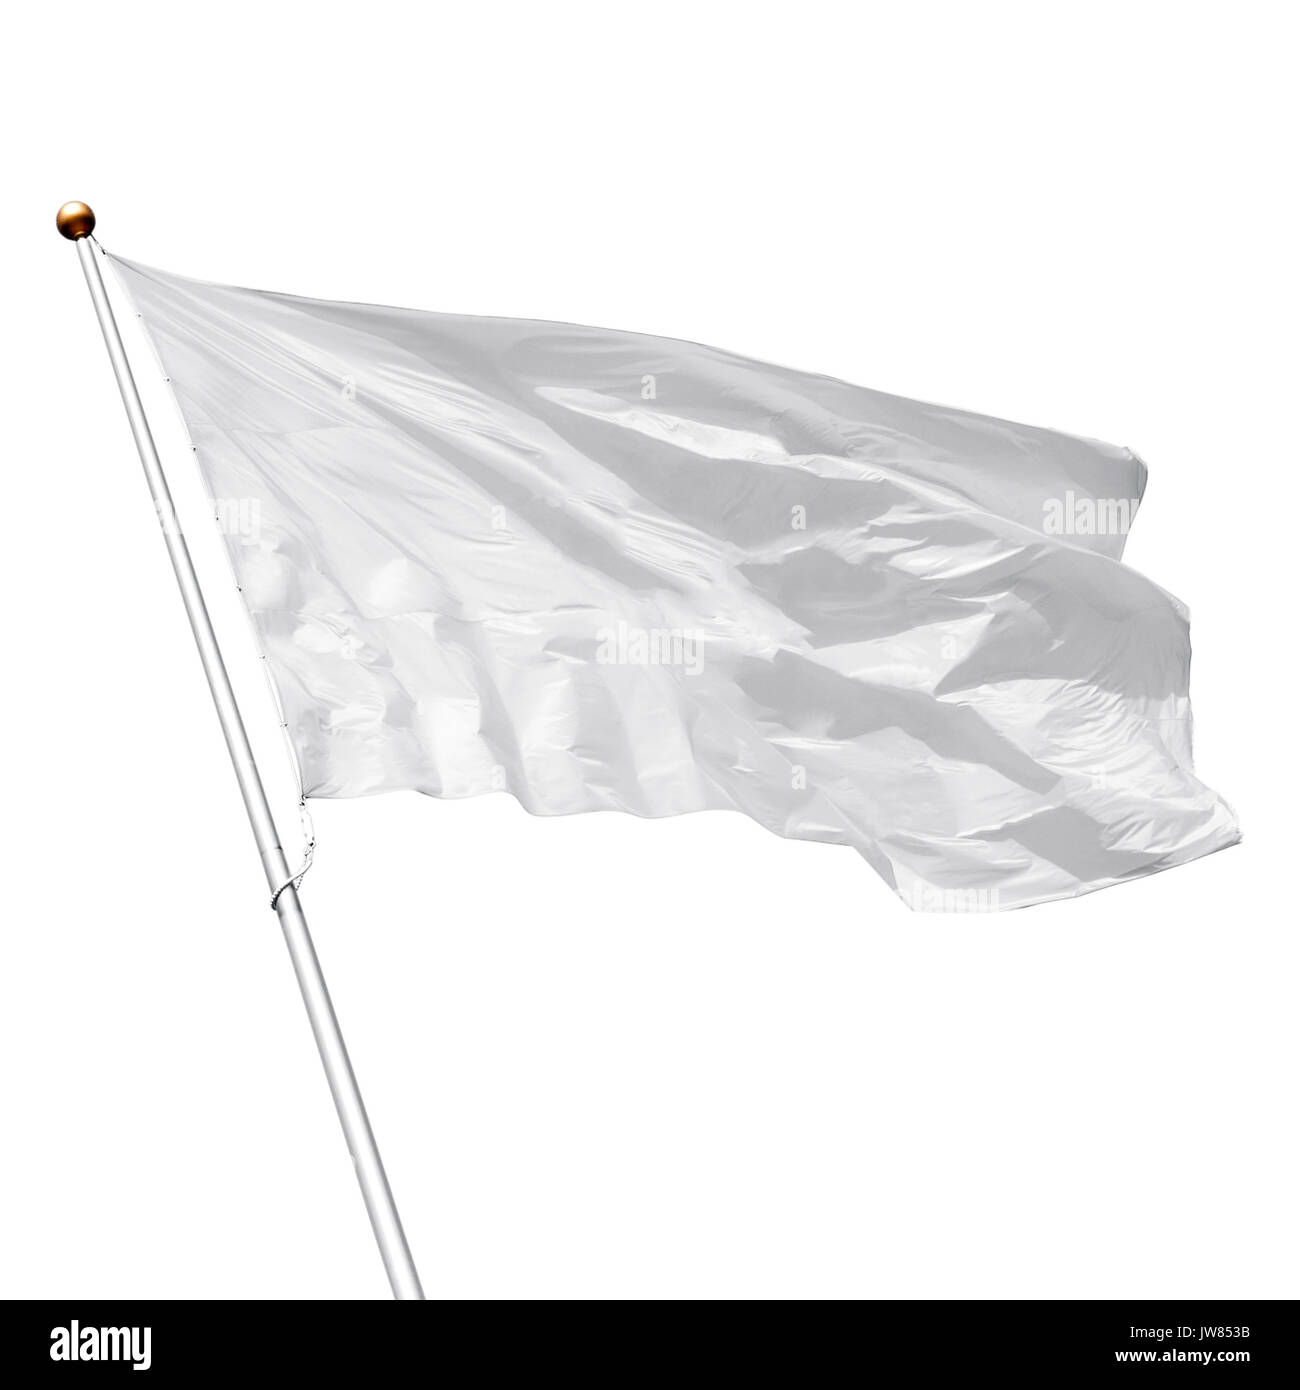 White flag waving in the wind on white background. Perfect mockup to add any logo, symbol or sign - Stock Image